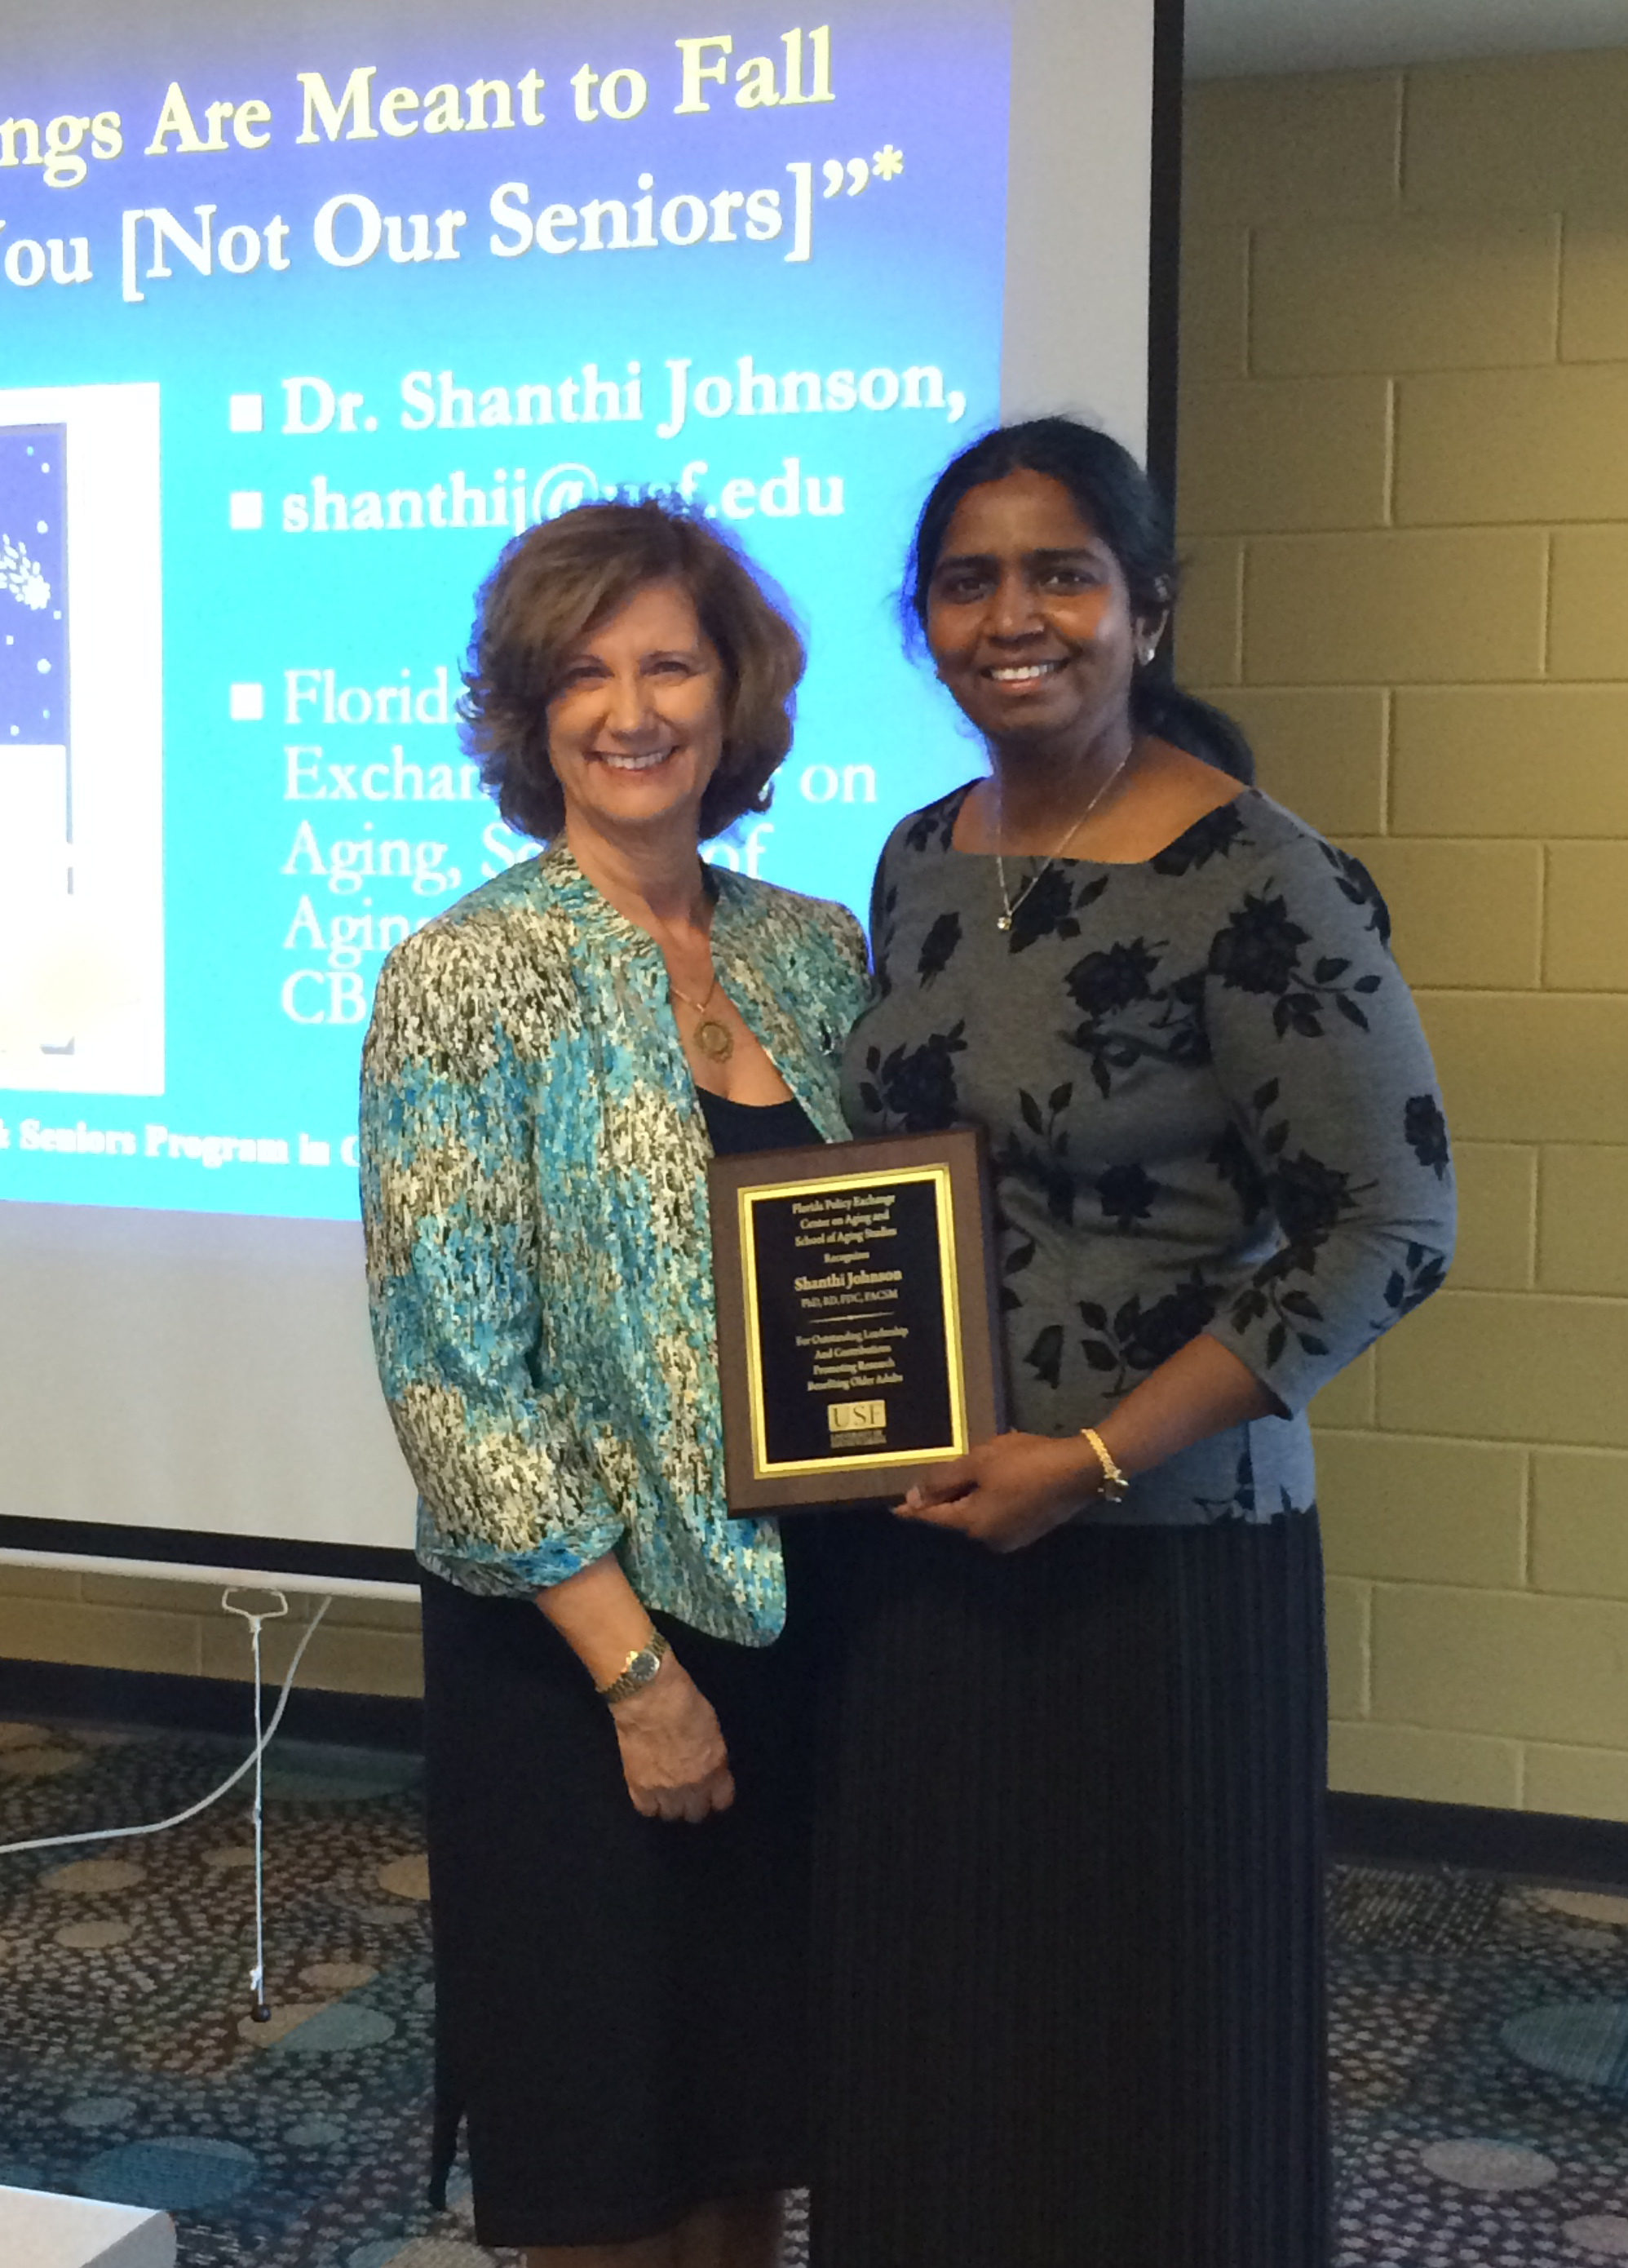 The Florida Policy Exchange Center on Aging's Dr. Kathryn Hyer with Dr. Shanthi Johnson